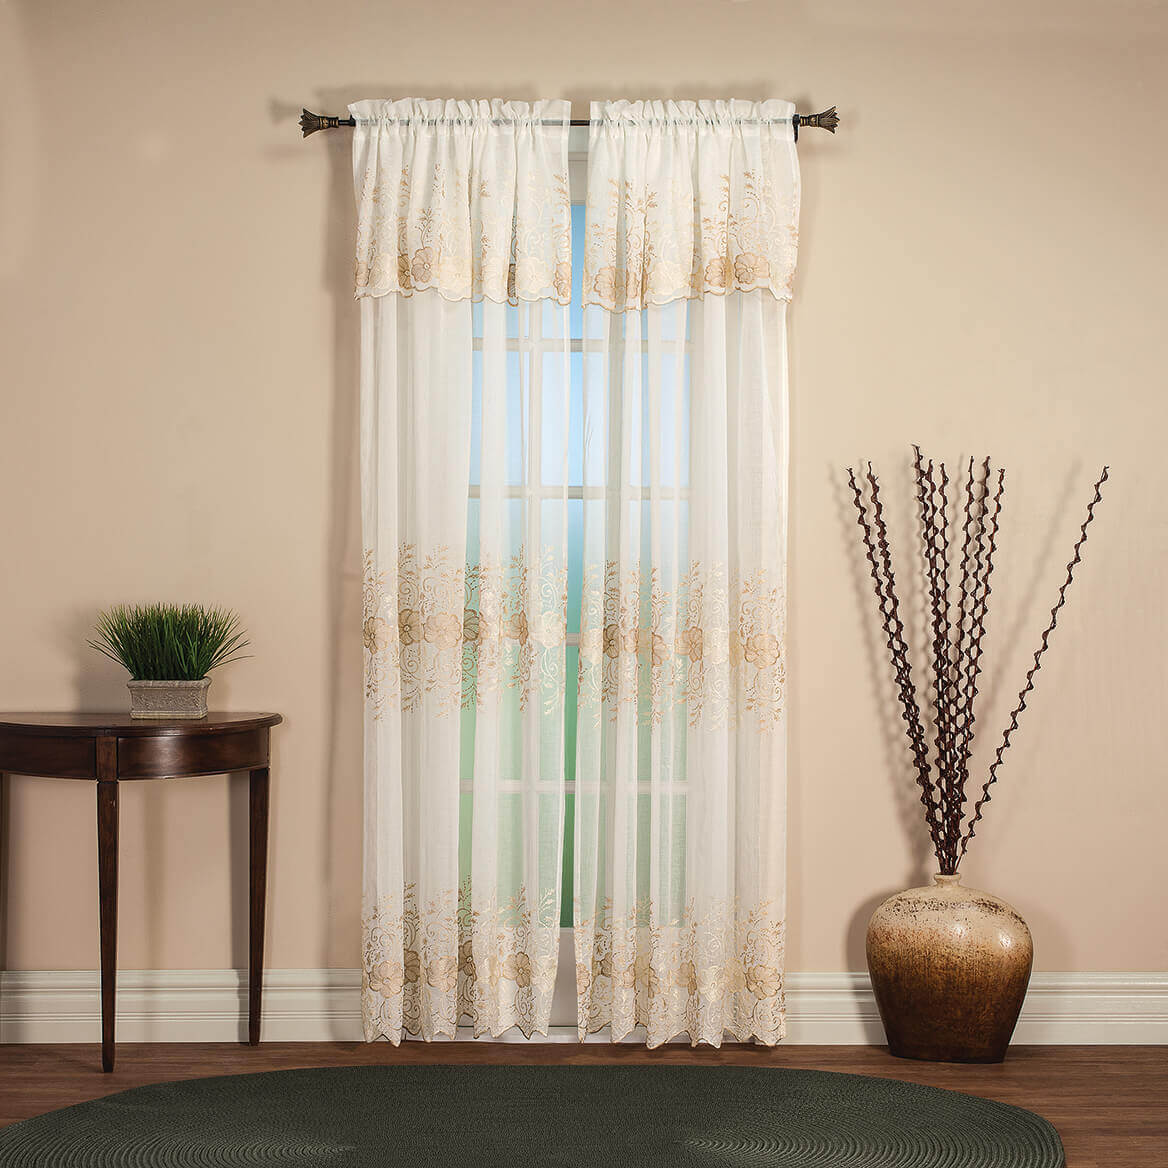 Camilla Panel with Attached Valance by OakRidge™-367629